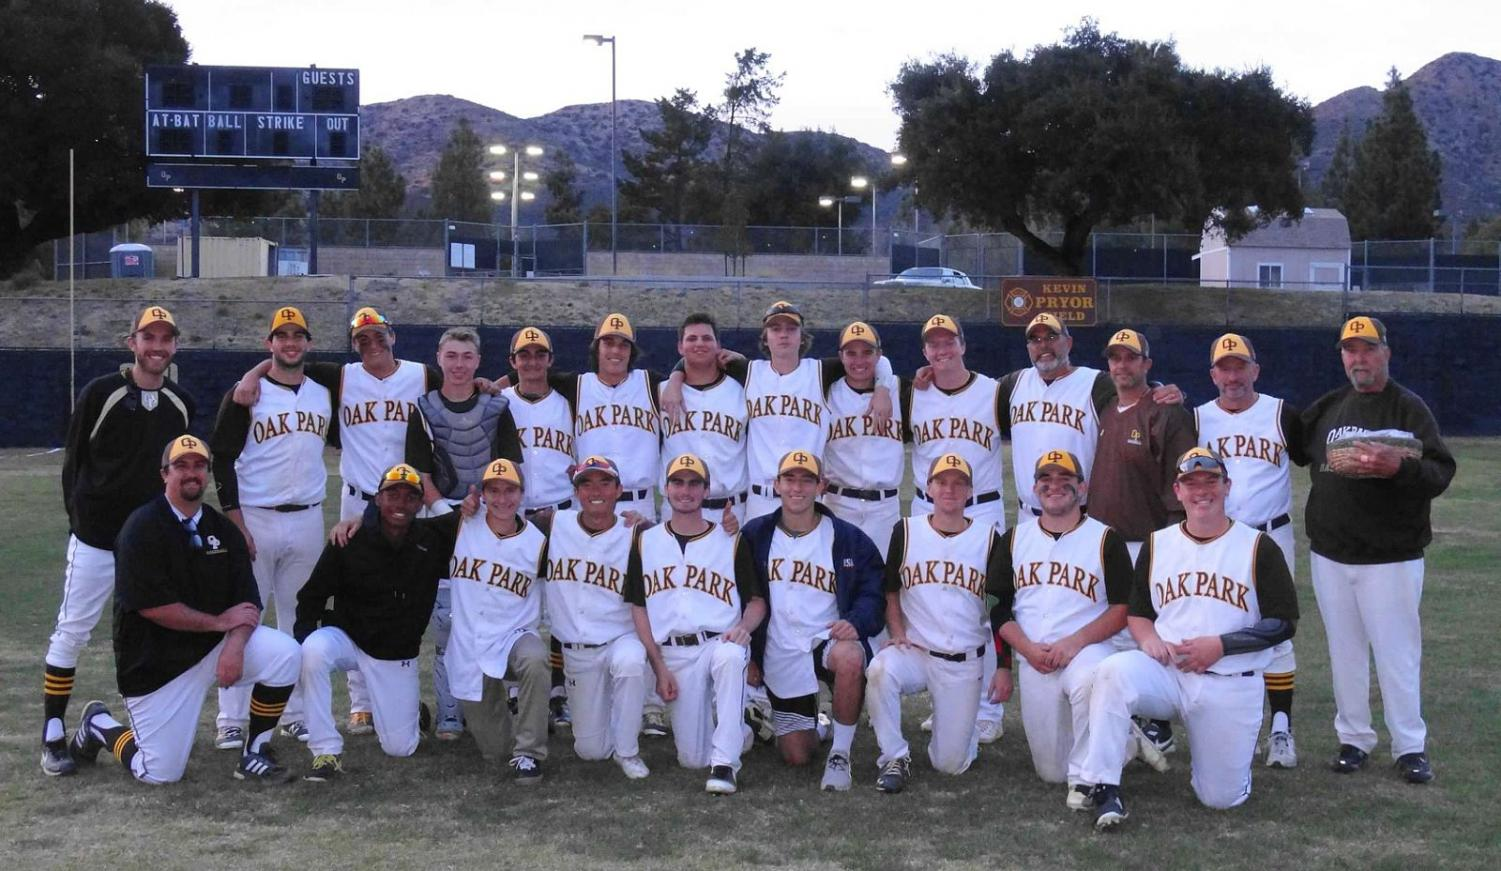 The Varsity Baseball team poses after winning their opening tournament